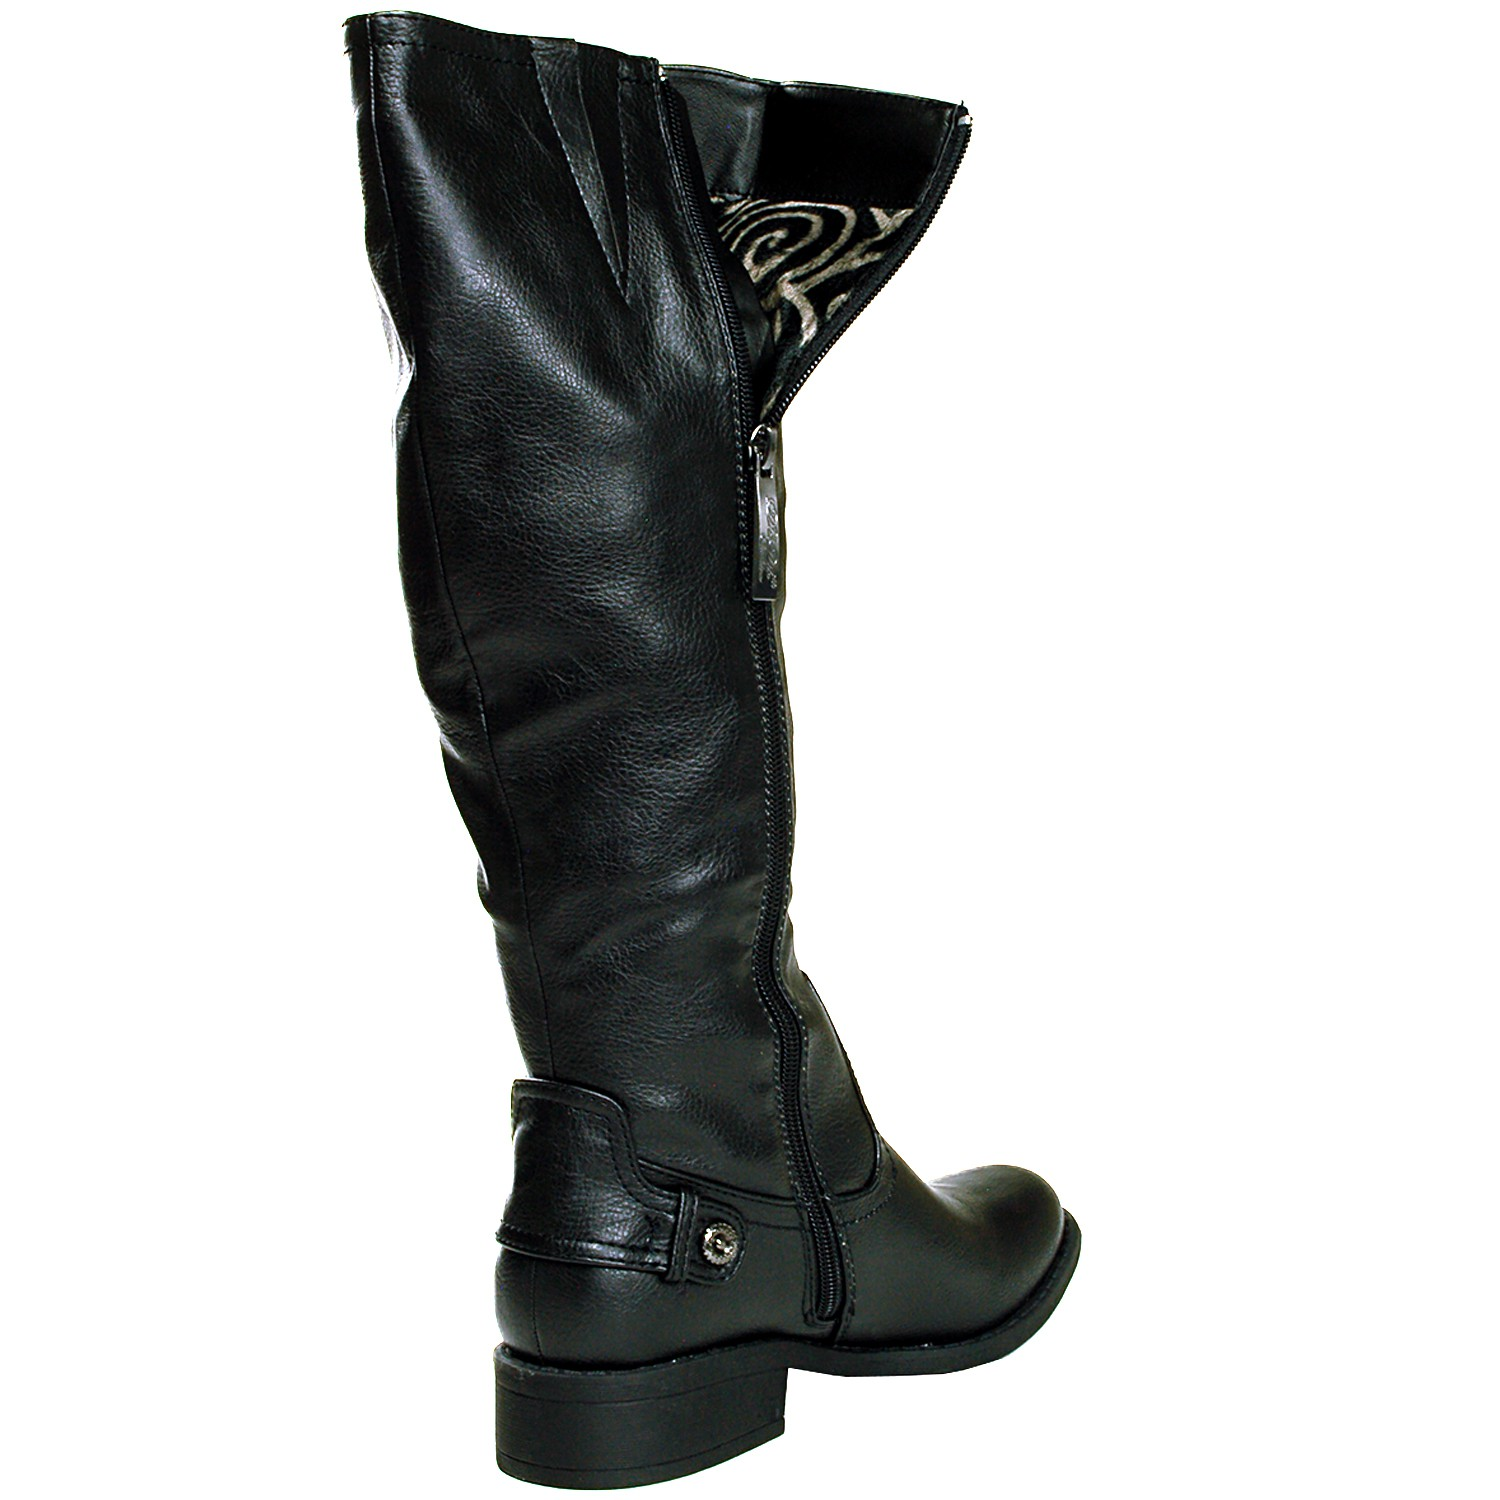 Shop Payless for a large selection of boots for women across thigh-high boots, booties, snow boots, rain boots, ankle boots, wide-calf boots, and many more! Payless also carries tall boots and riding boots, as well as thigh-high boots. Whether your preference is below the knee or over-the-knee number, these boots create an eye-catching look.